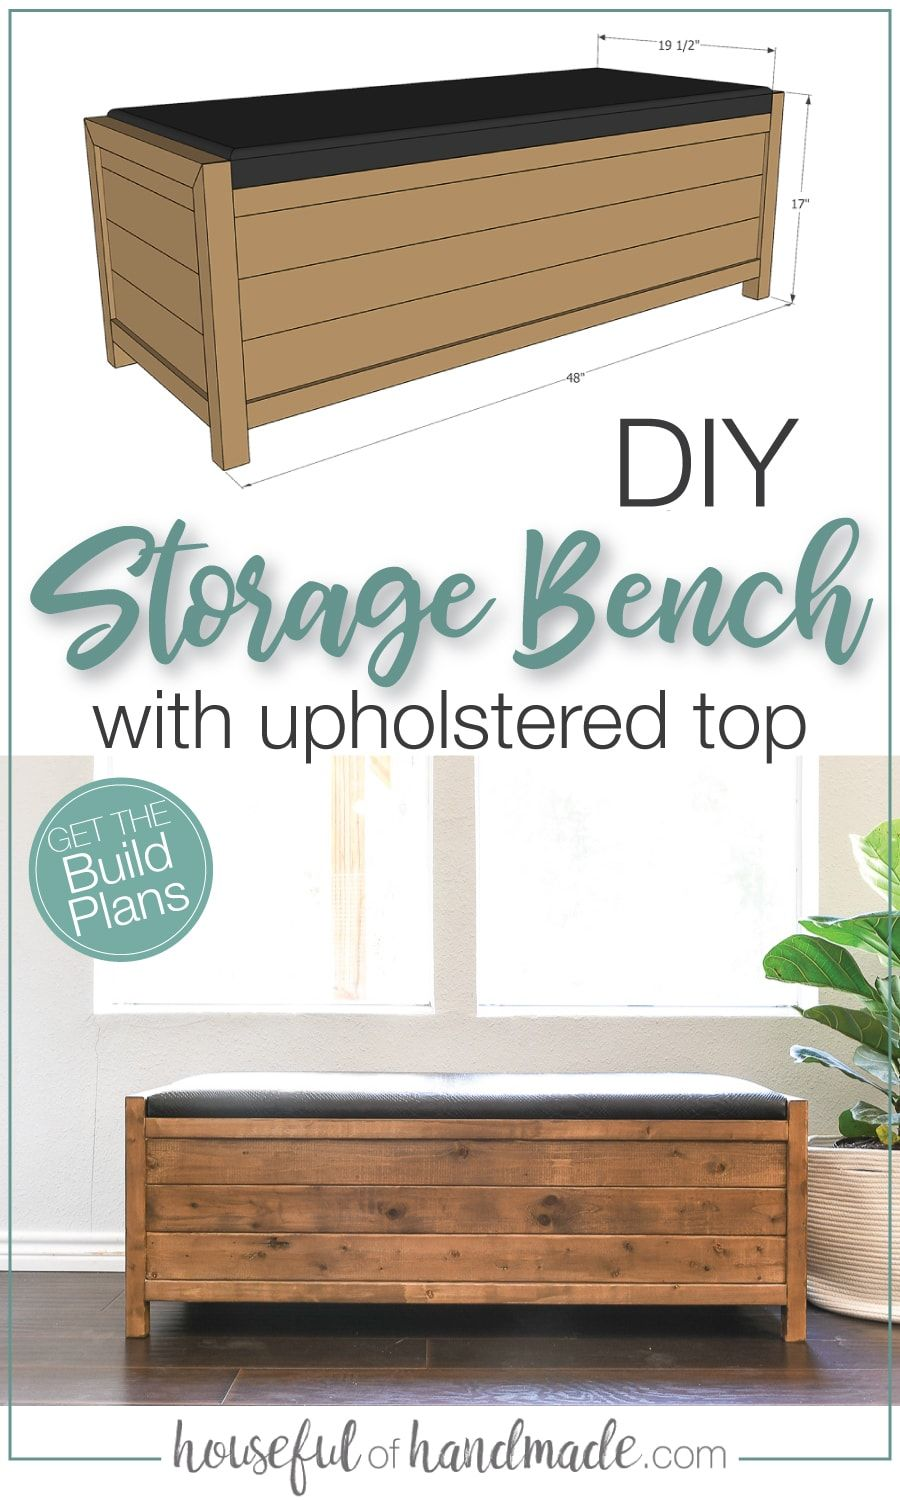 Simple Upholstered Storage Bench Build Plans